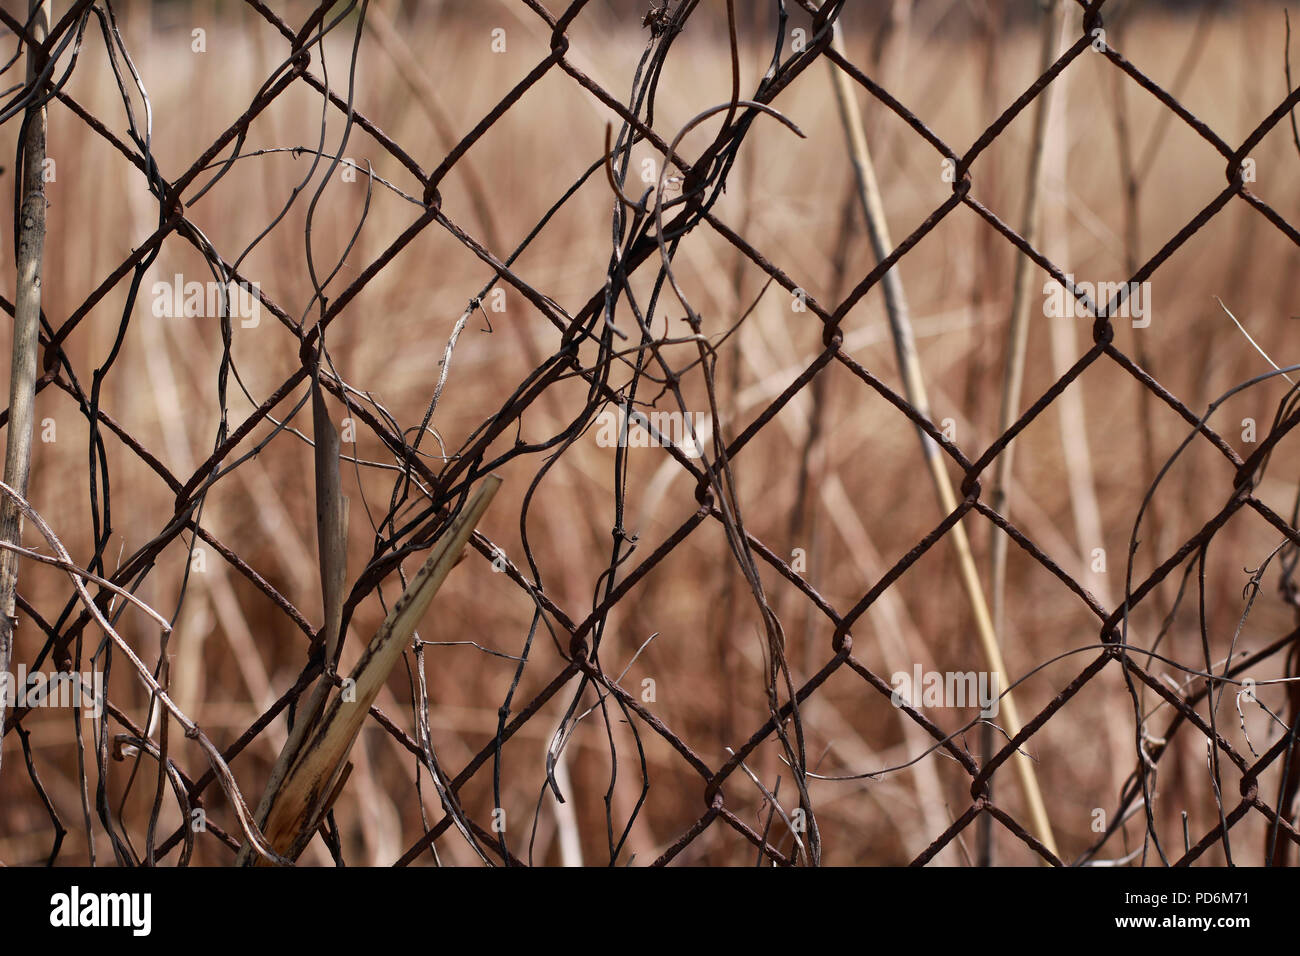 Metal wire grid fence with dry brown grass on background - Stock Image